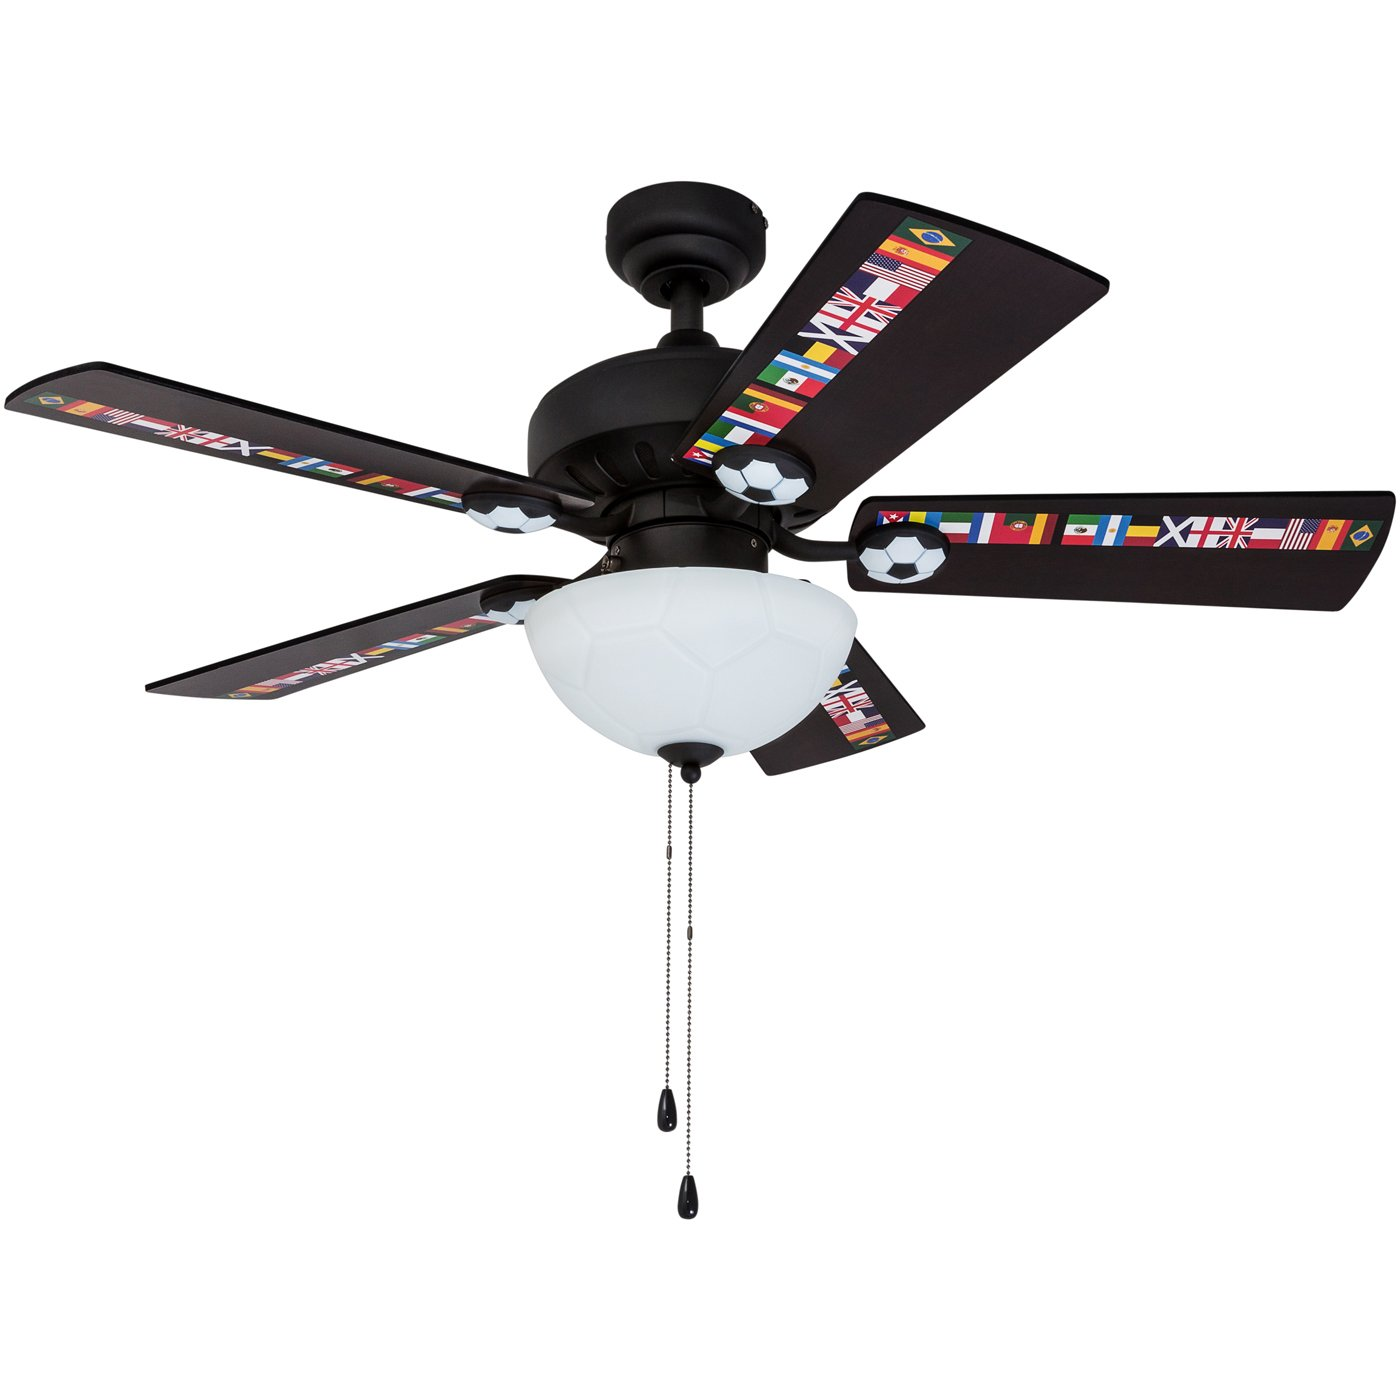 Prominence Home 40274-01 Soccer Ceiling Fan International Sports, 42'', Black